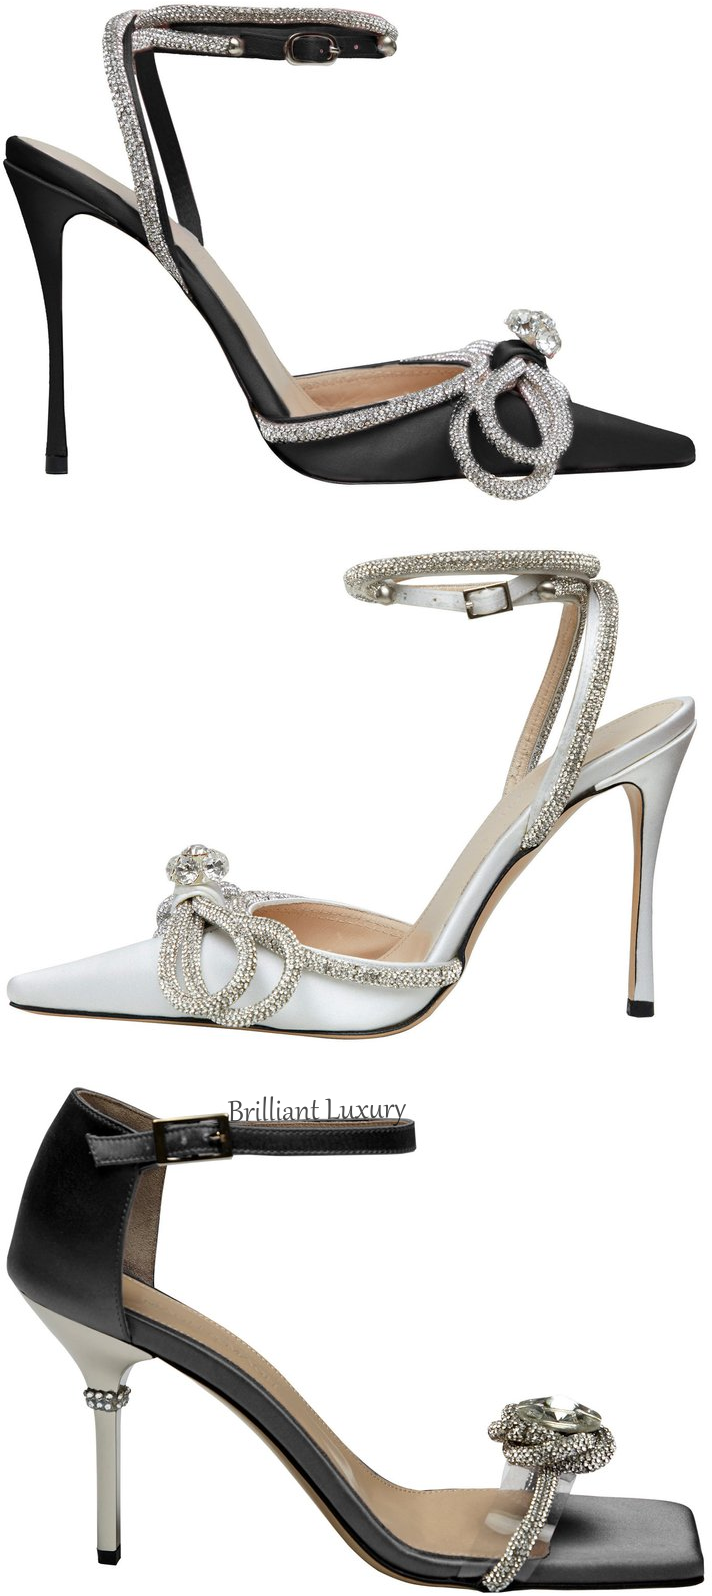 Mach & Mach black & white bejeweled shoes #brilliantluxury